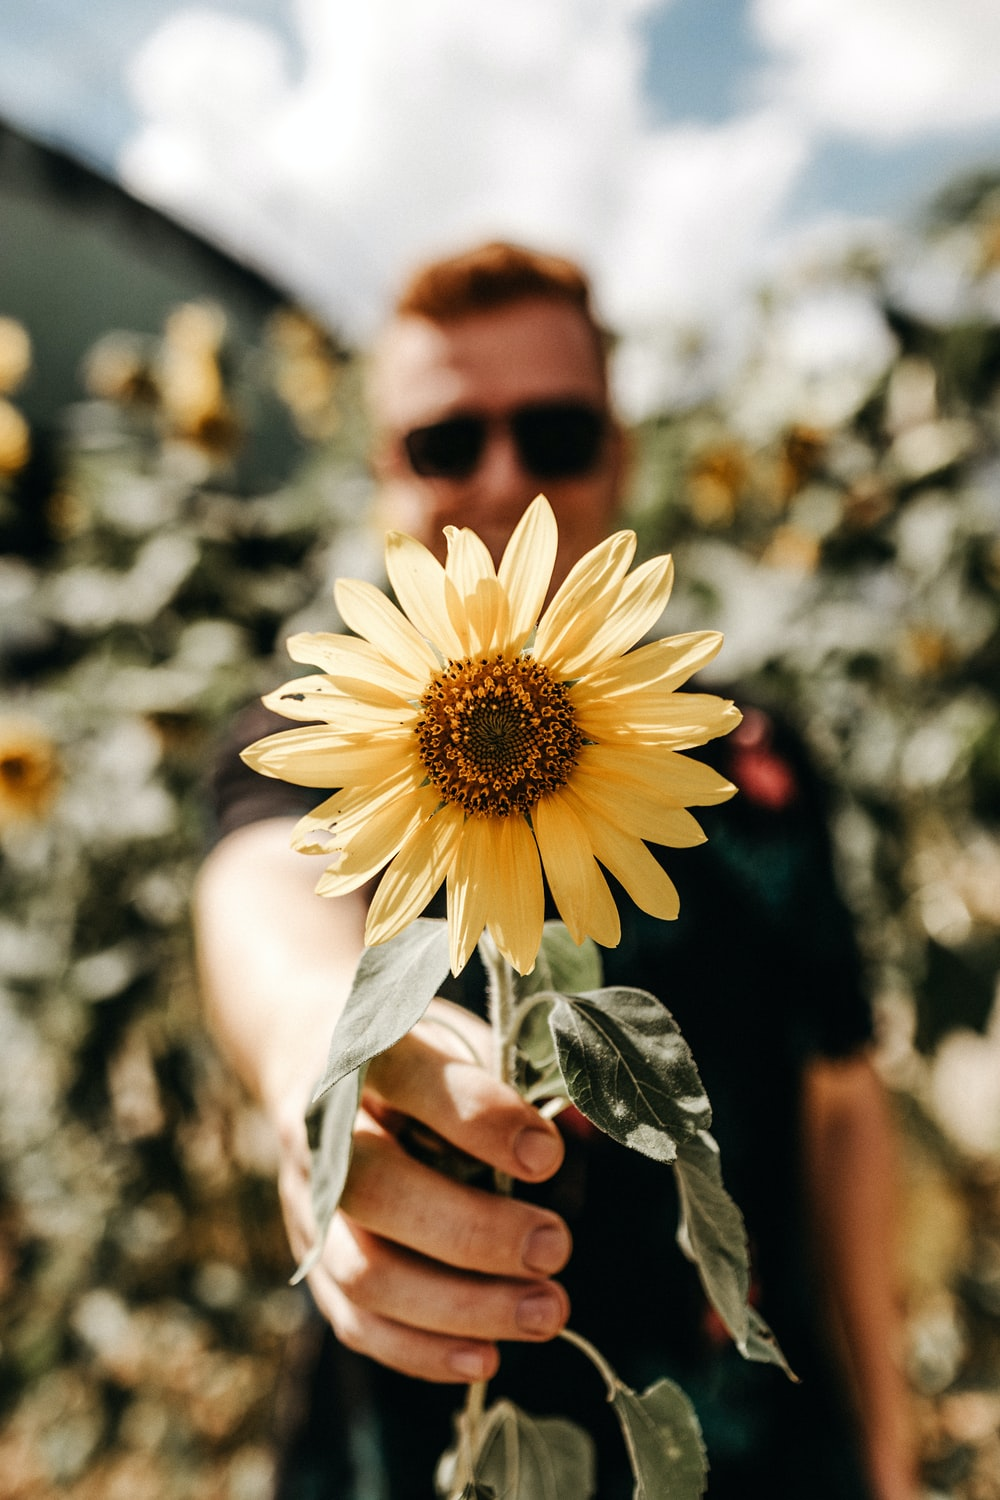 smiling man standing and showing yellow sunflower